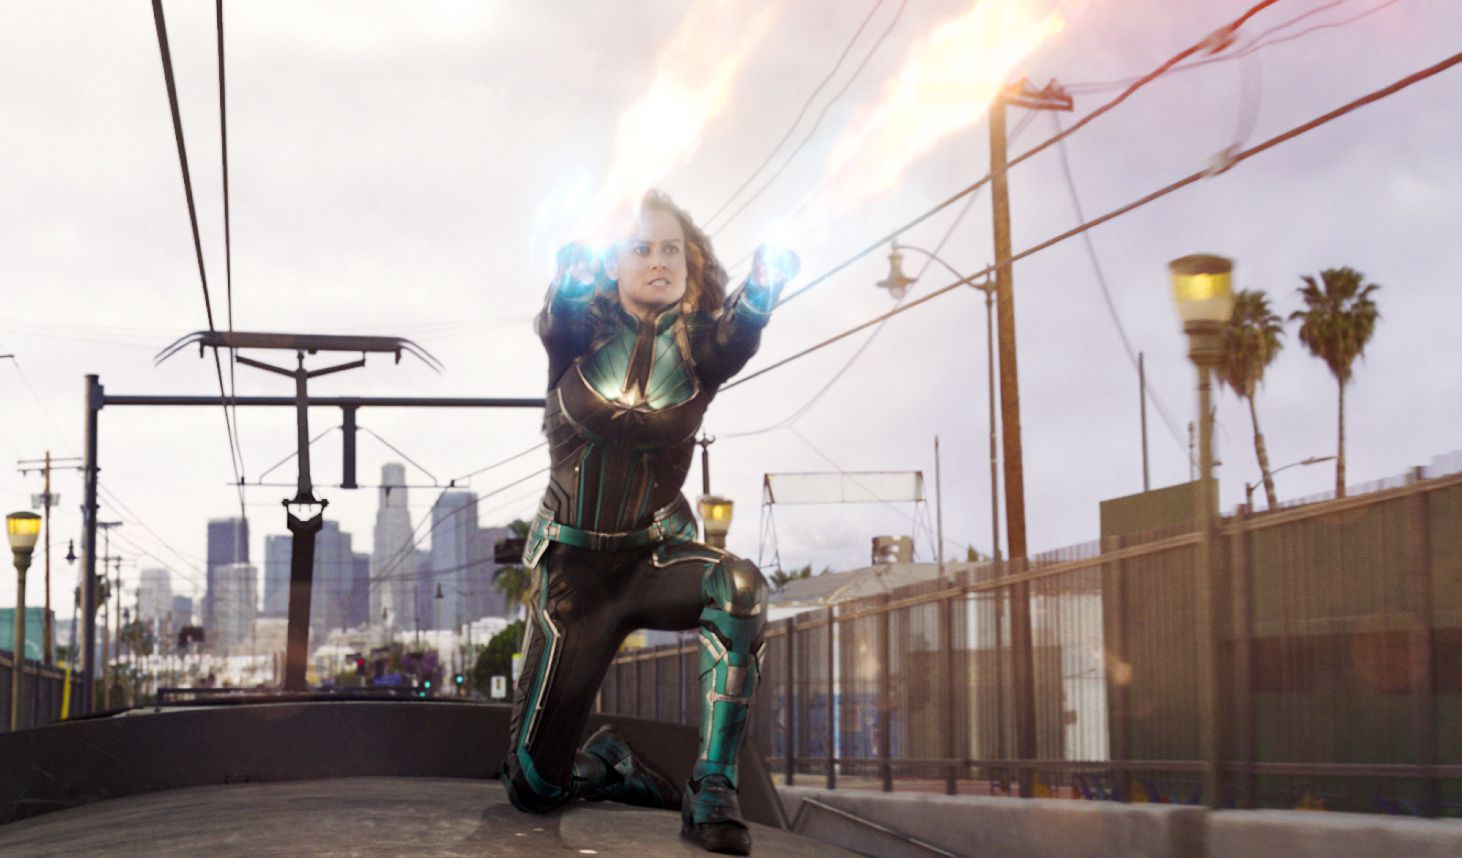 captain marvel' is the 'lean in' of superhero movies - the